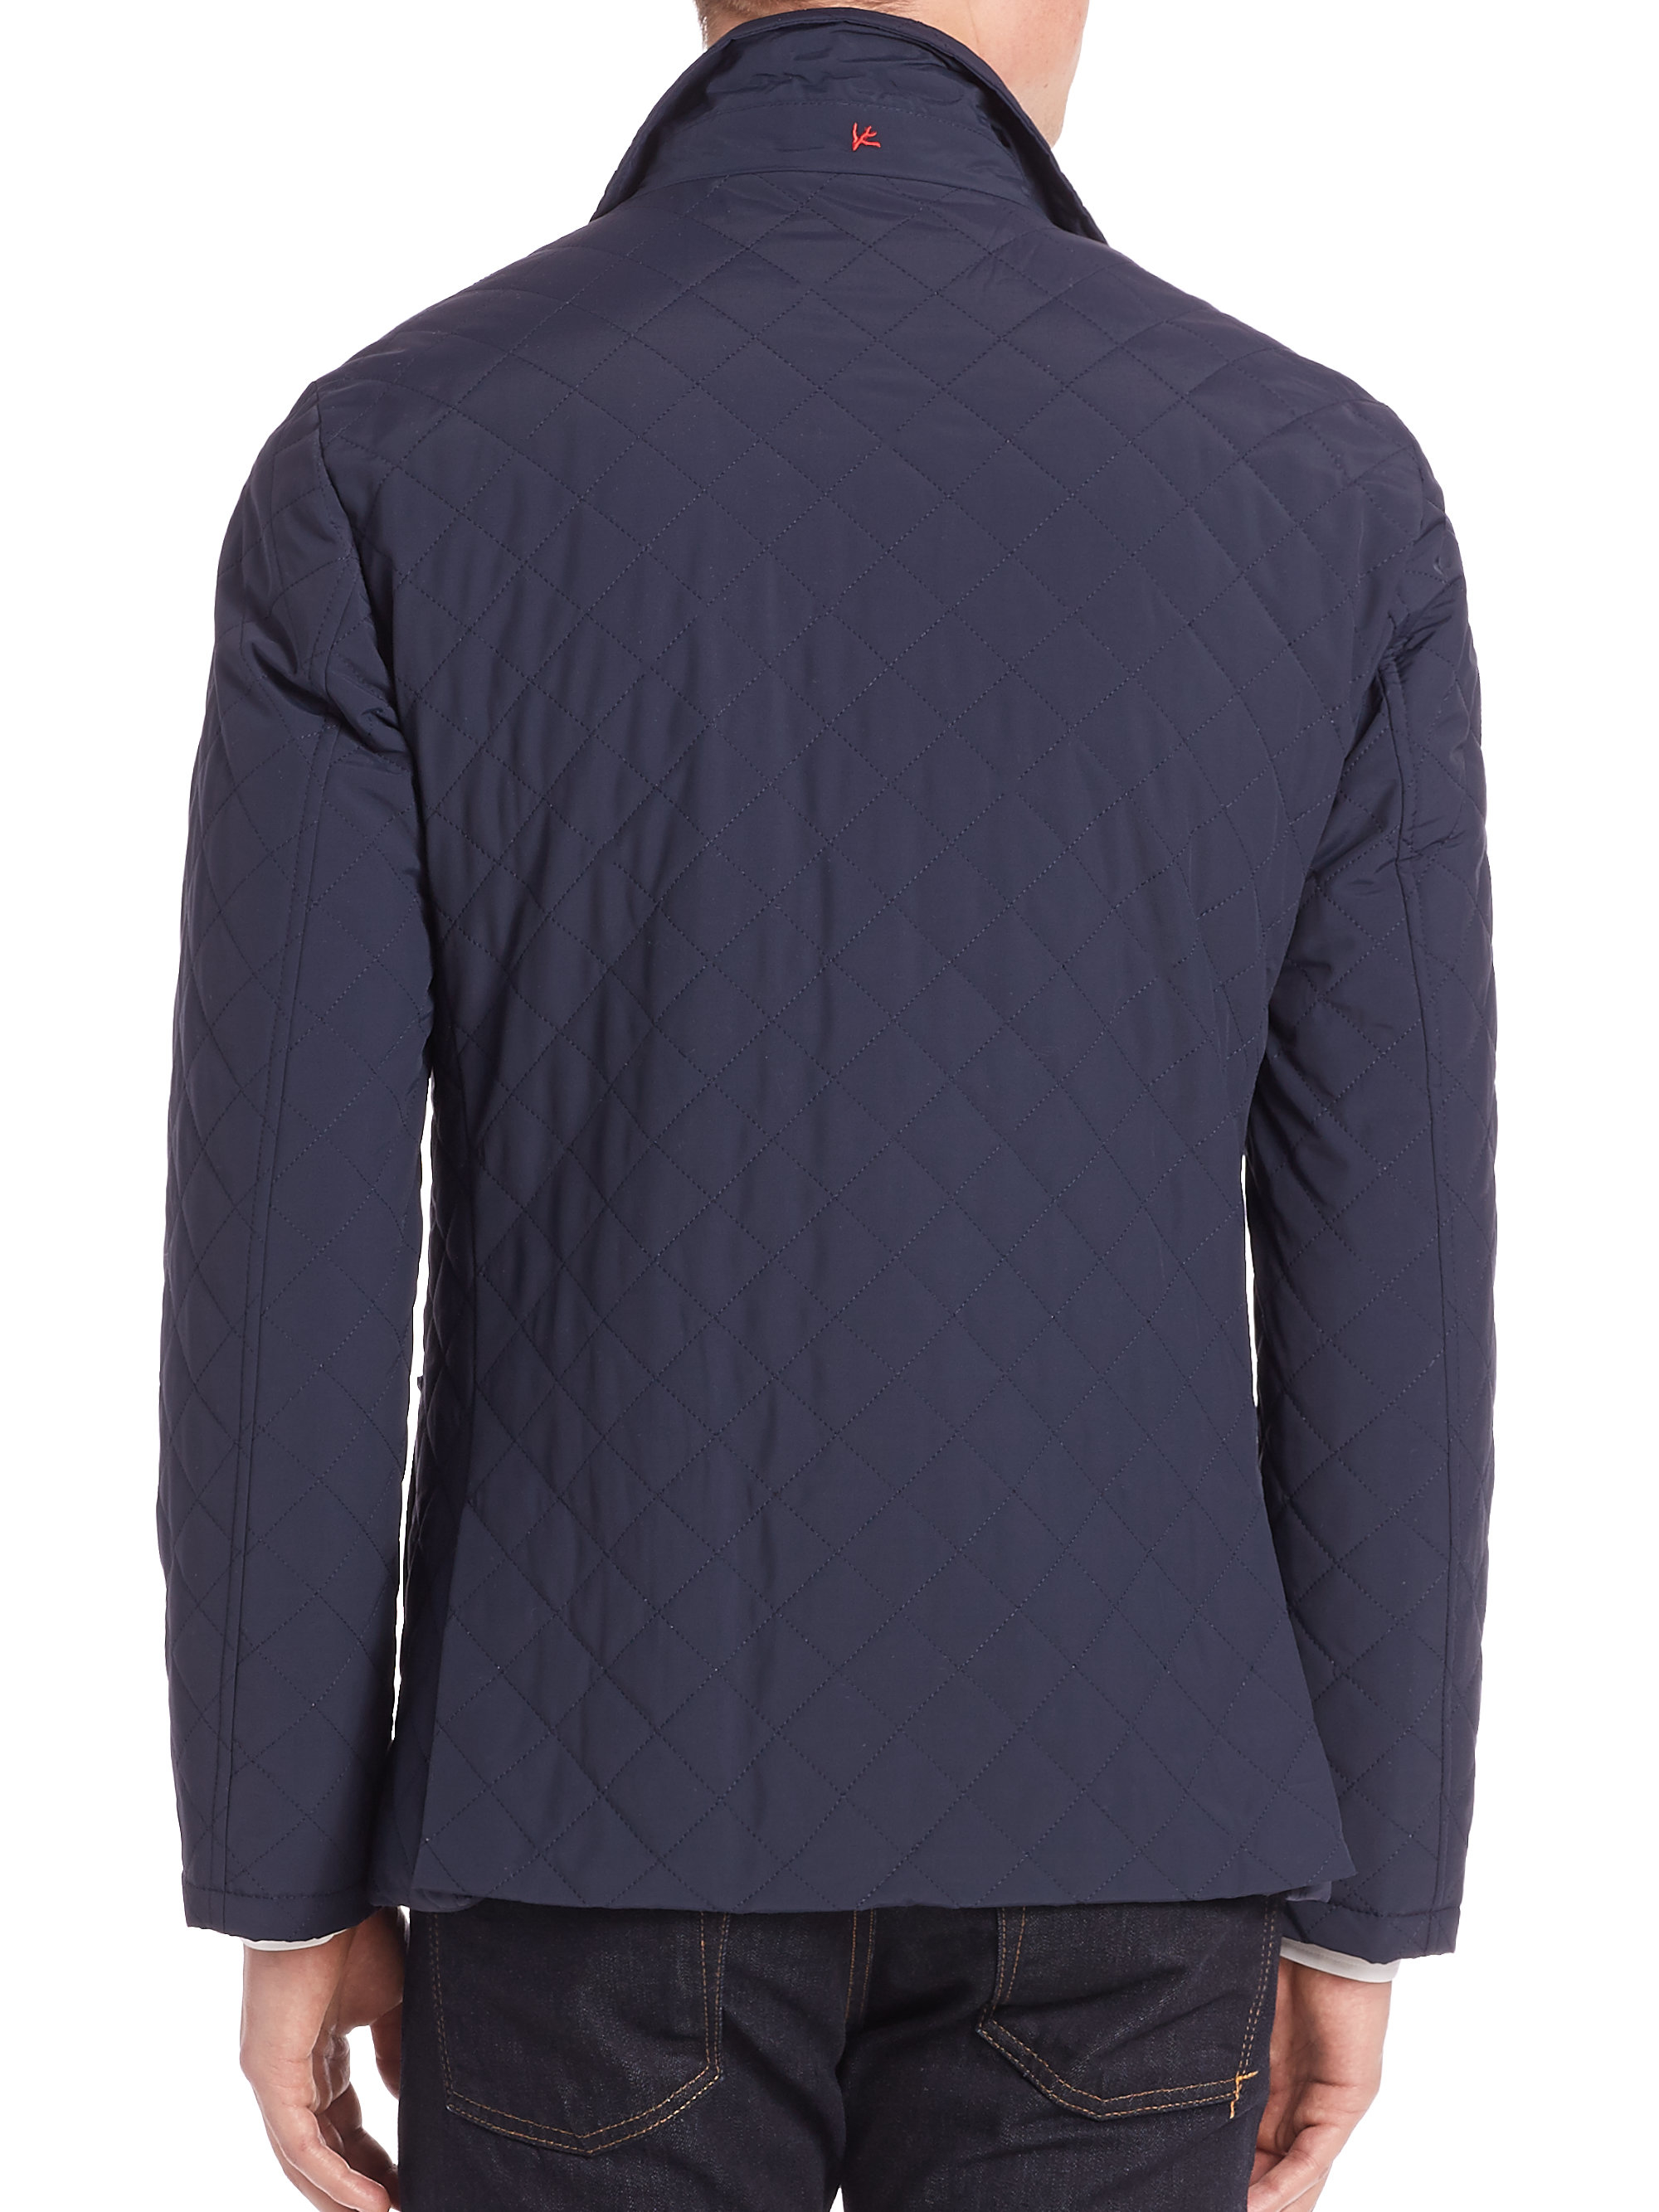 footjoy fj shirt golf thermal quilt jacket previous navy quilted